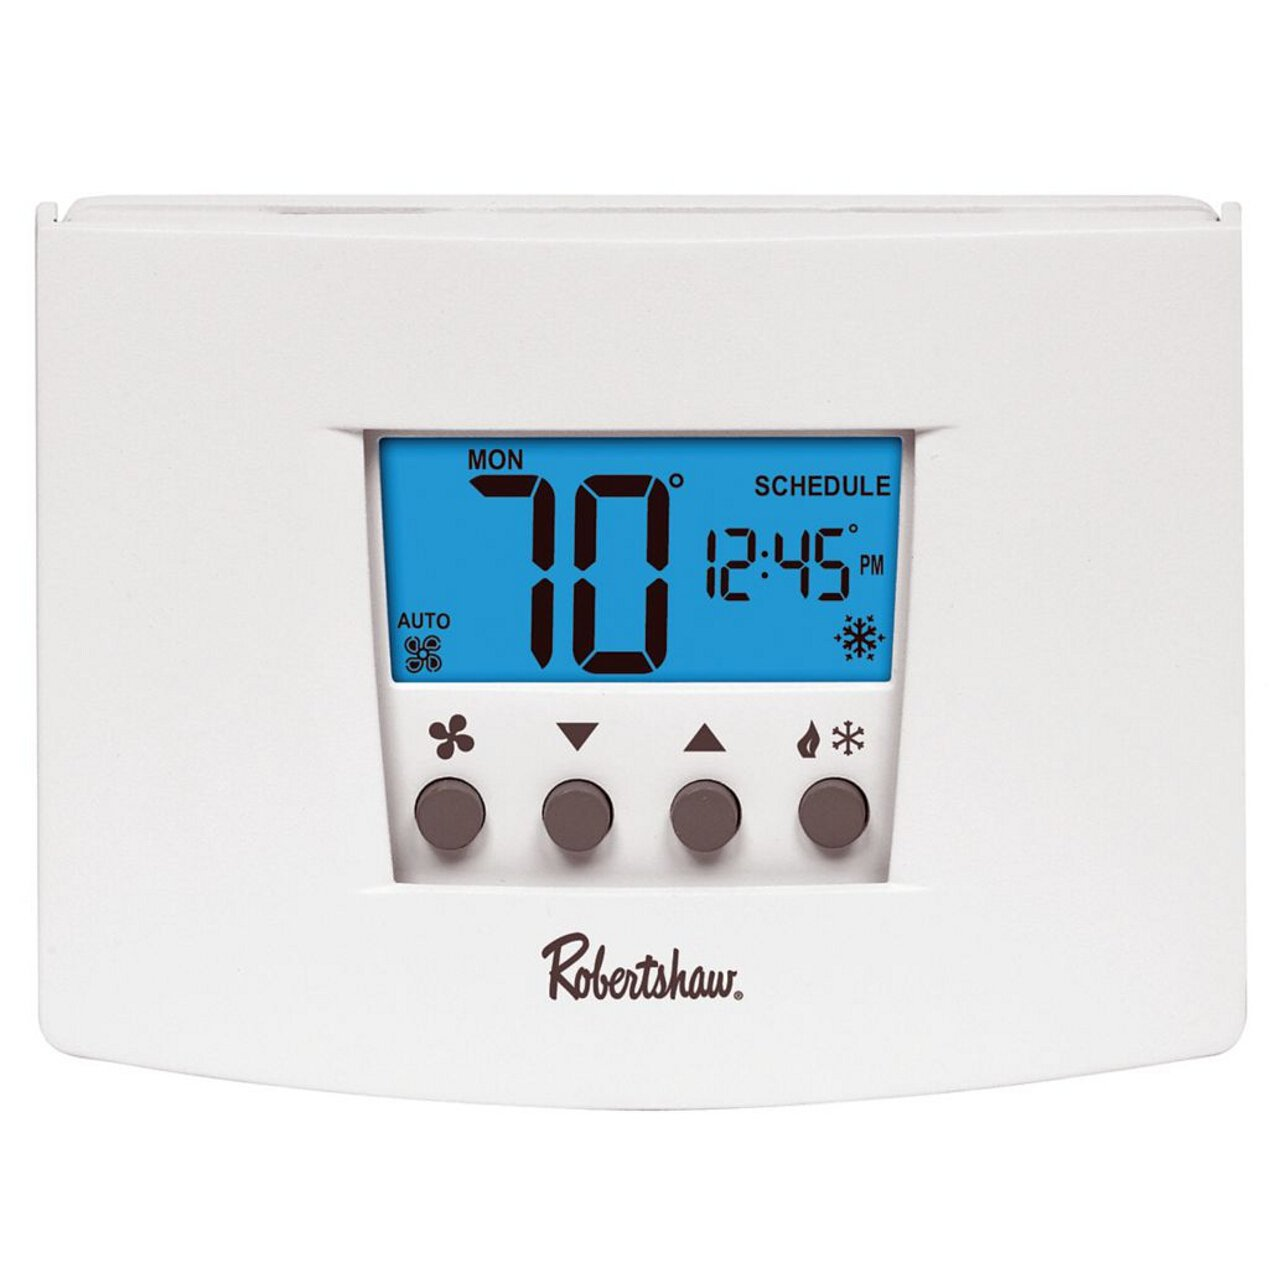 Robertshaw RS4220 2 Heat/2 Cool Universal Digital Non Programmable Multistage Thermostat